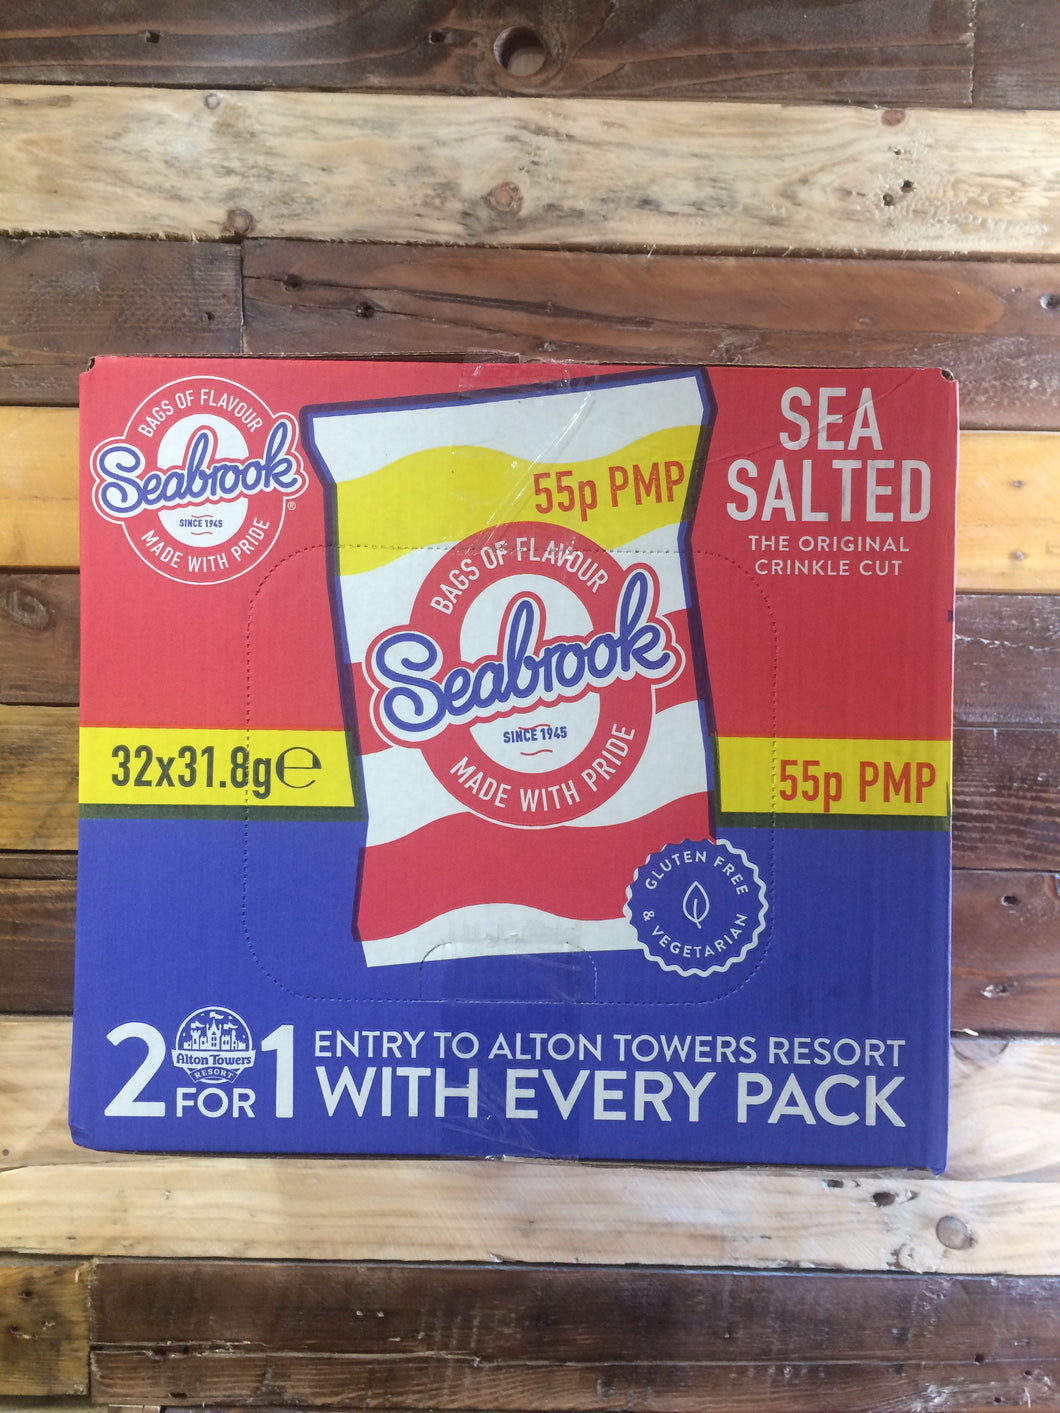 Seabrook Sea Salted Crisp Box 32x Bags (31.8g)